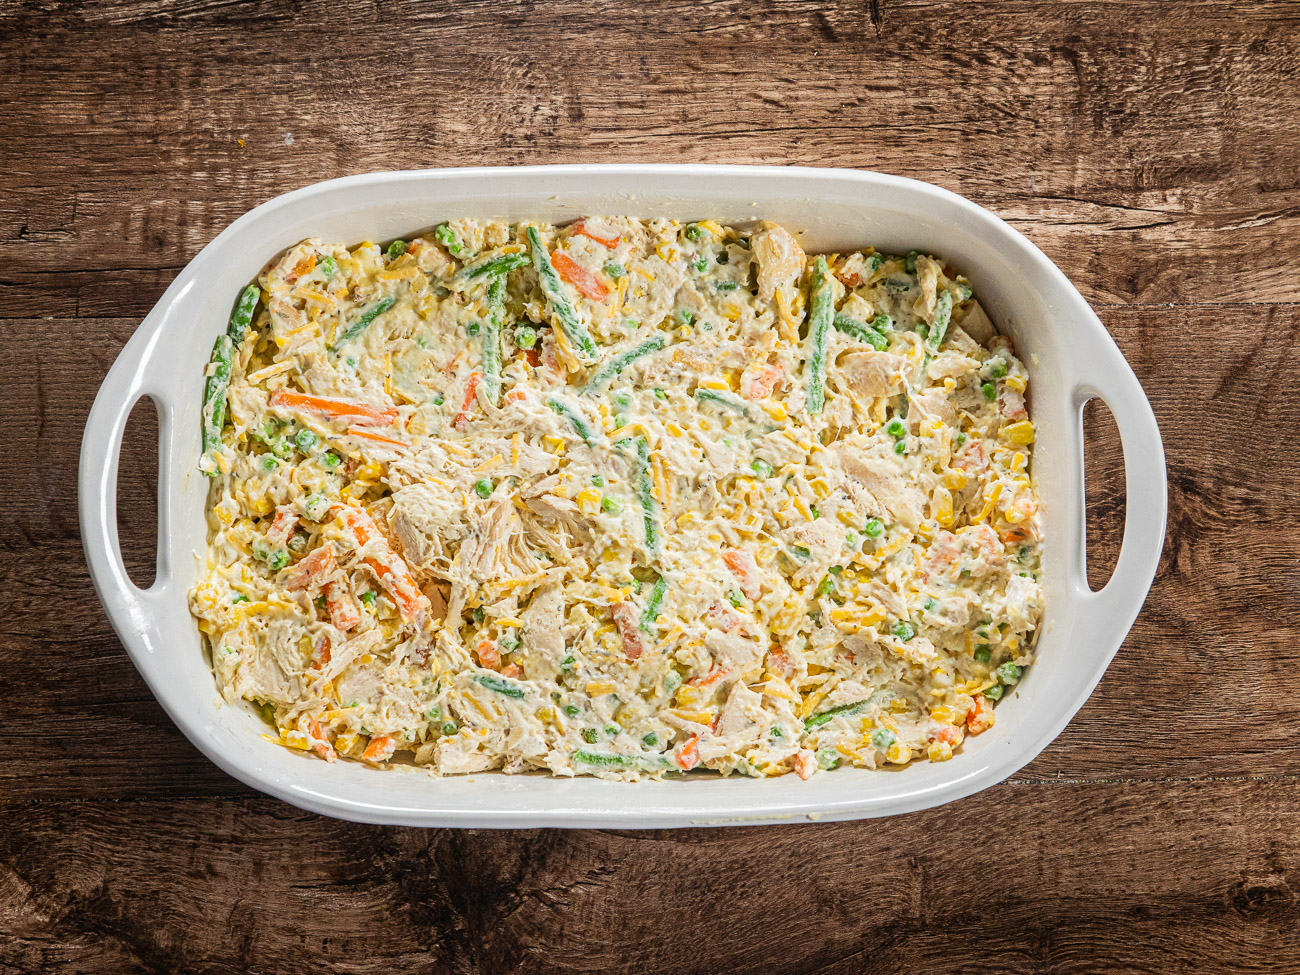 Pour into prepared casserole dish then top with tater tots, lined up neatly in rows.